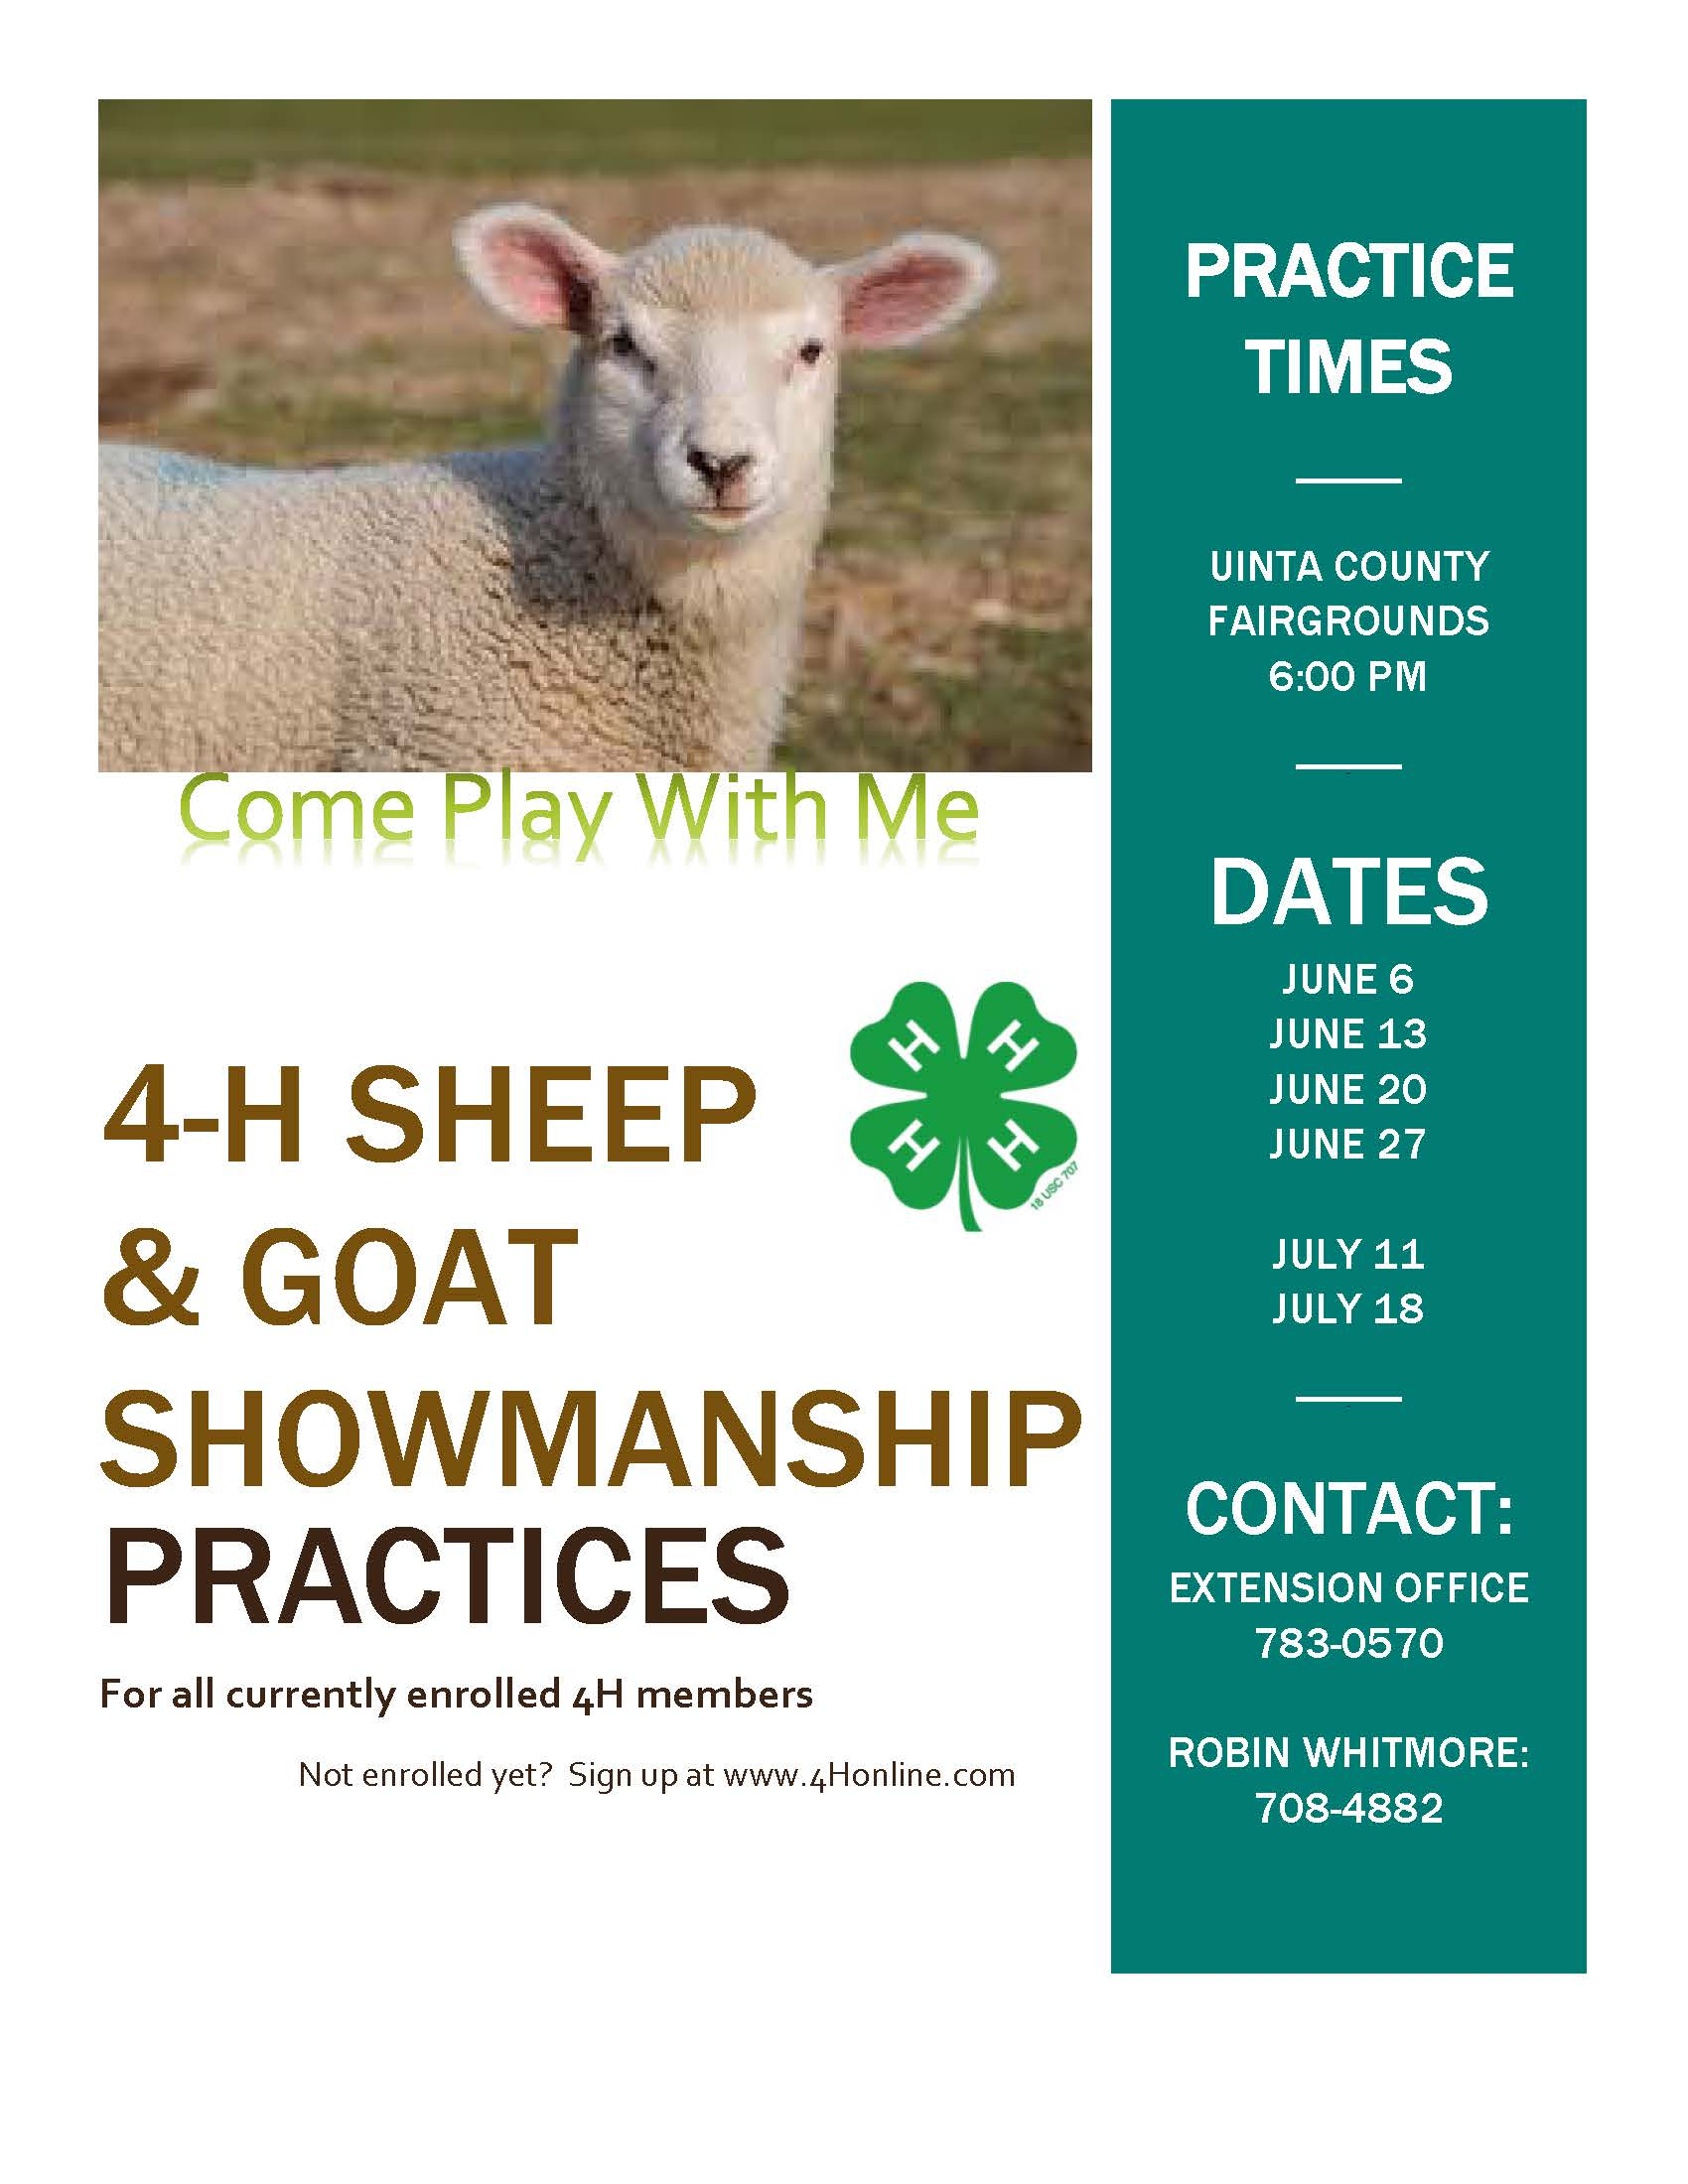 2019 Sheep-Goat Showmanship Practices Flyer